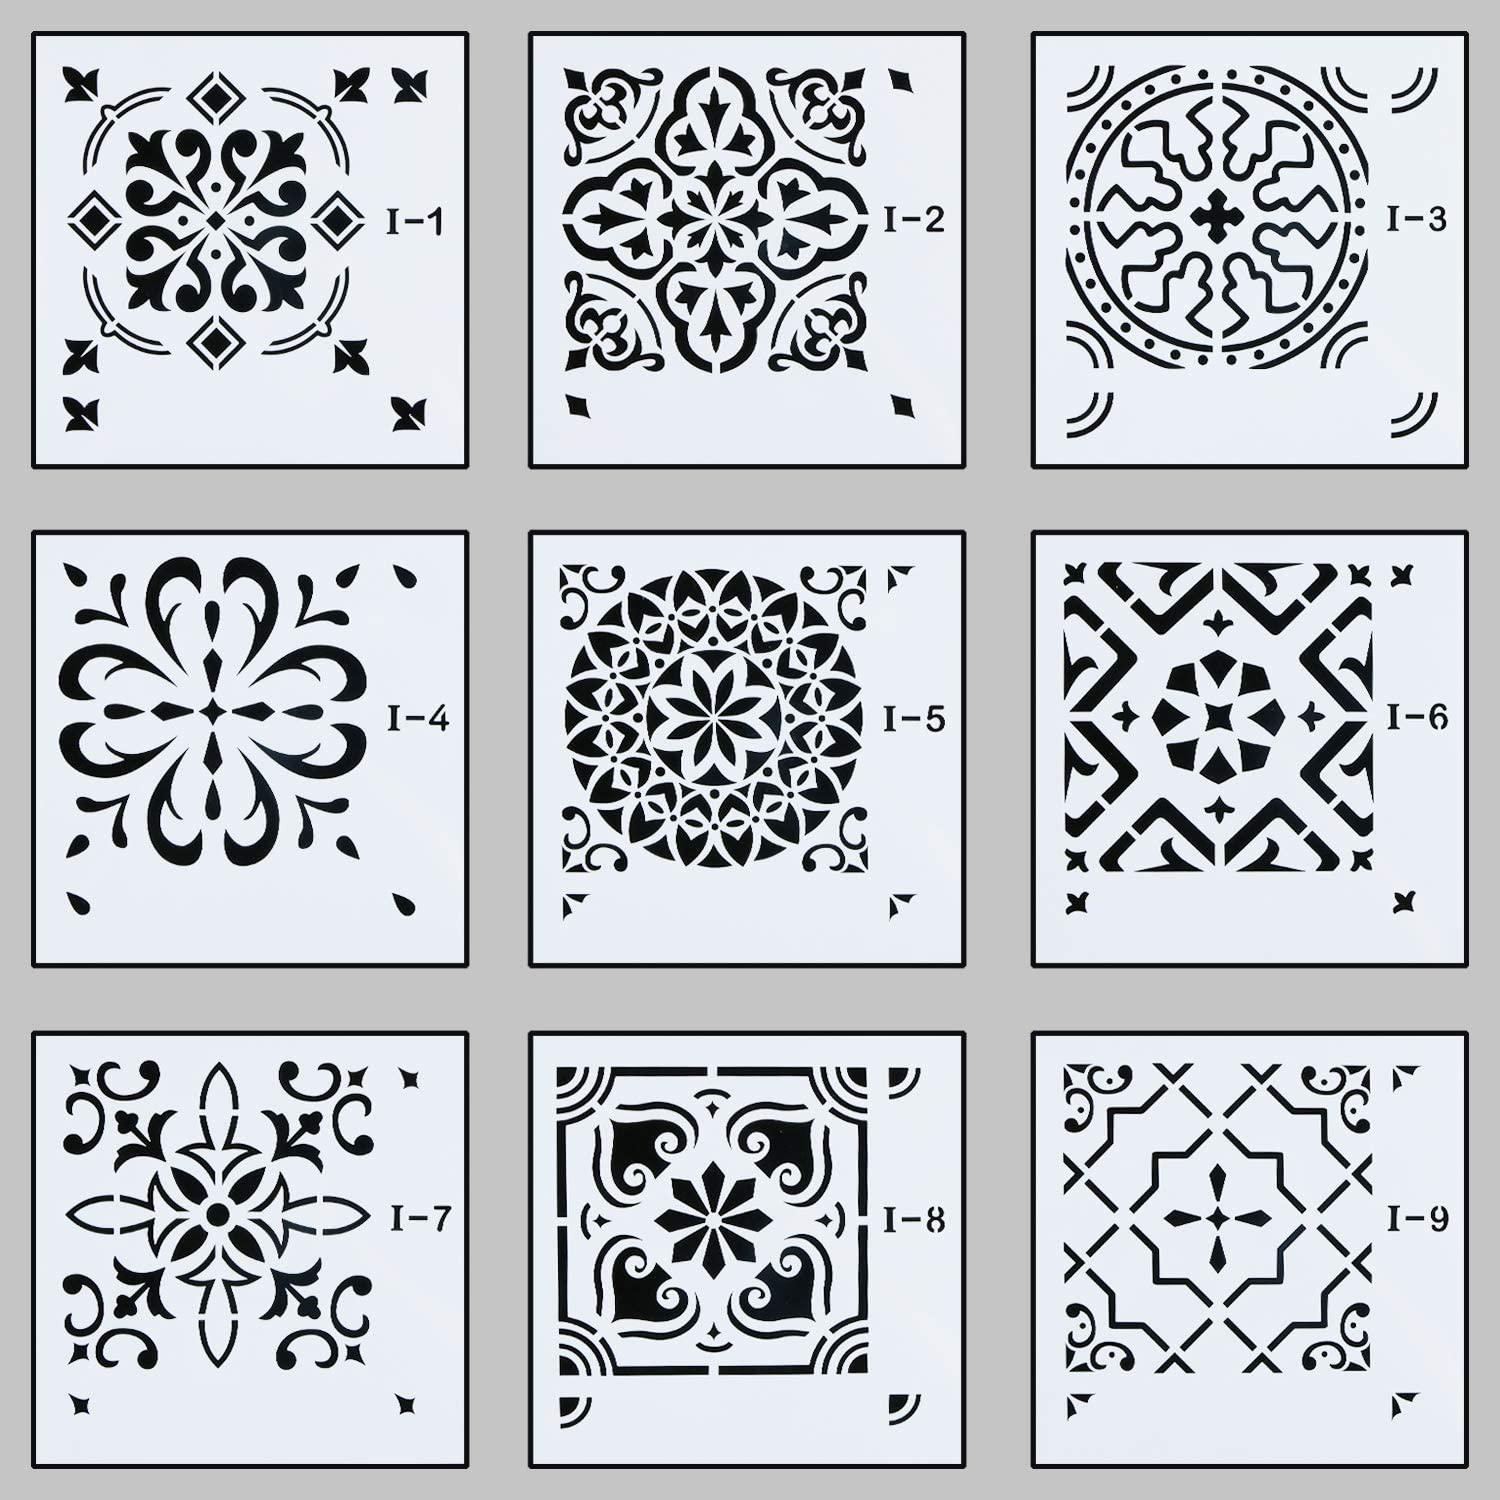 Unime Mandala Stencils Template,Mandala Wall Stencil for Painting (6X6 inch) - Reusable Laser Cut Stencils Art for Fabric Floor Furniture Wood Ceramic Tile and Home Décor,9 Pack